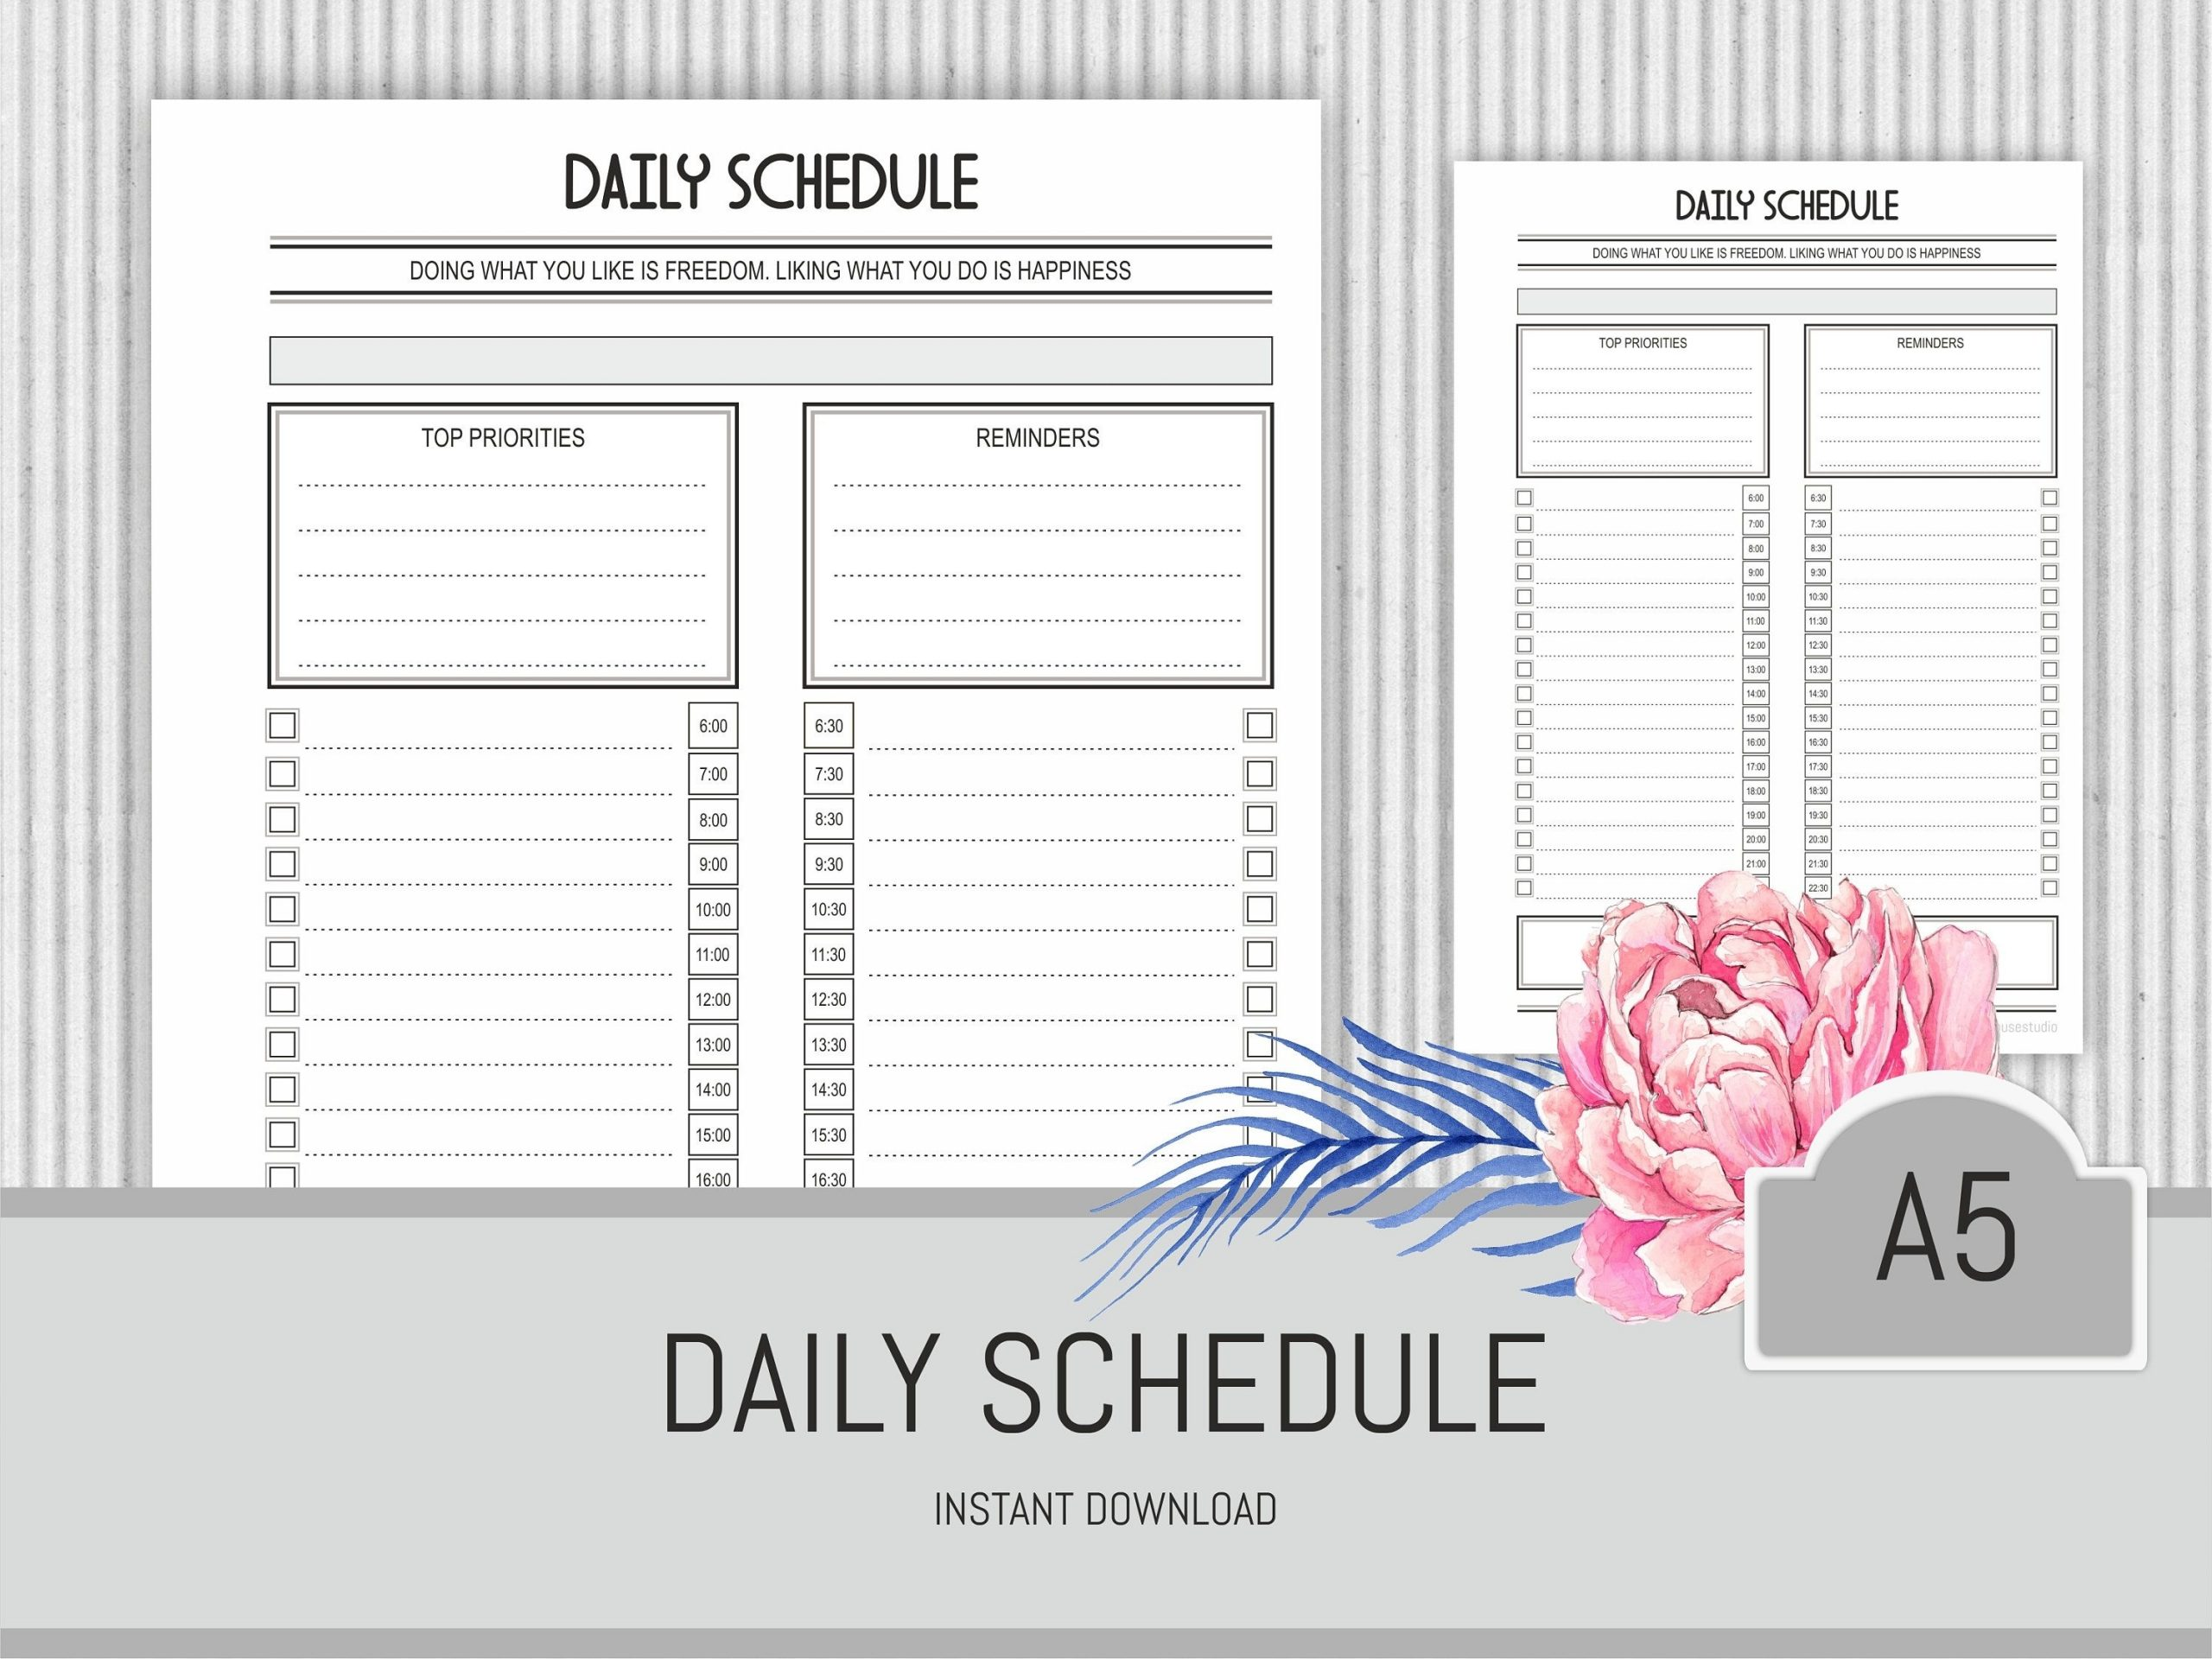 Get Daily Schedule By Half Hour